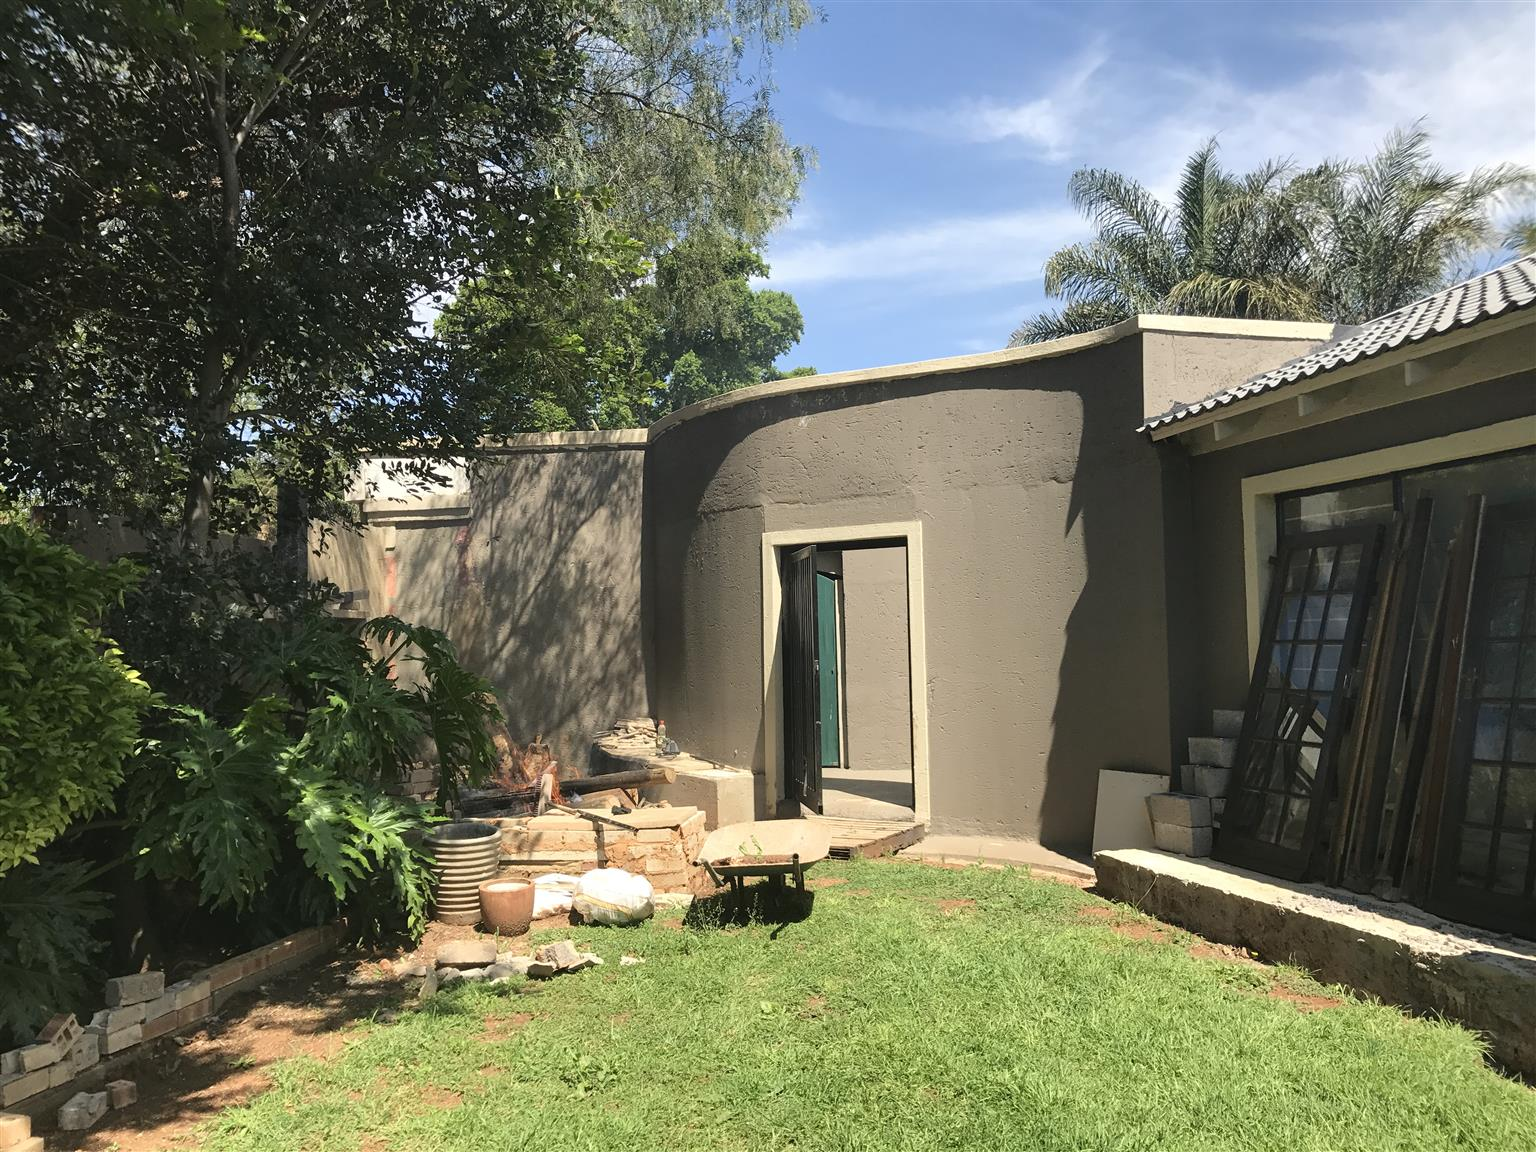 4 Bedroom, 3 Bathroom House for sale